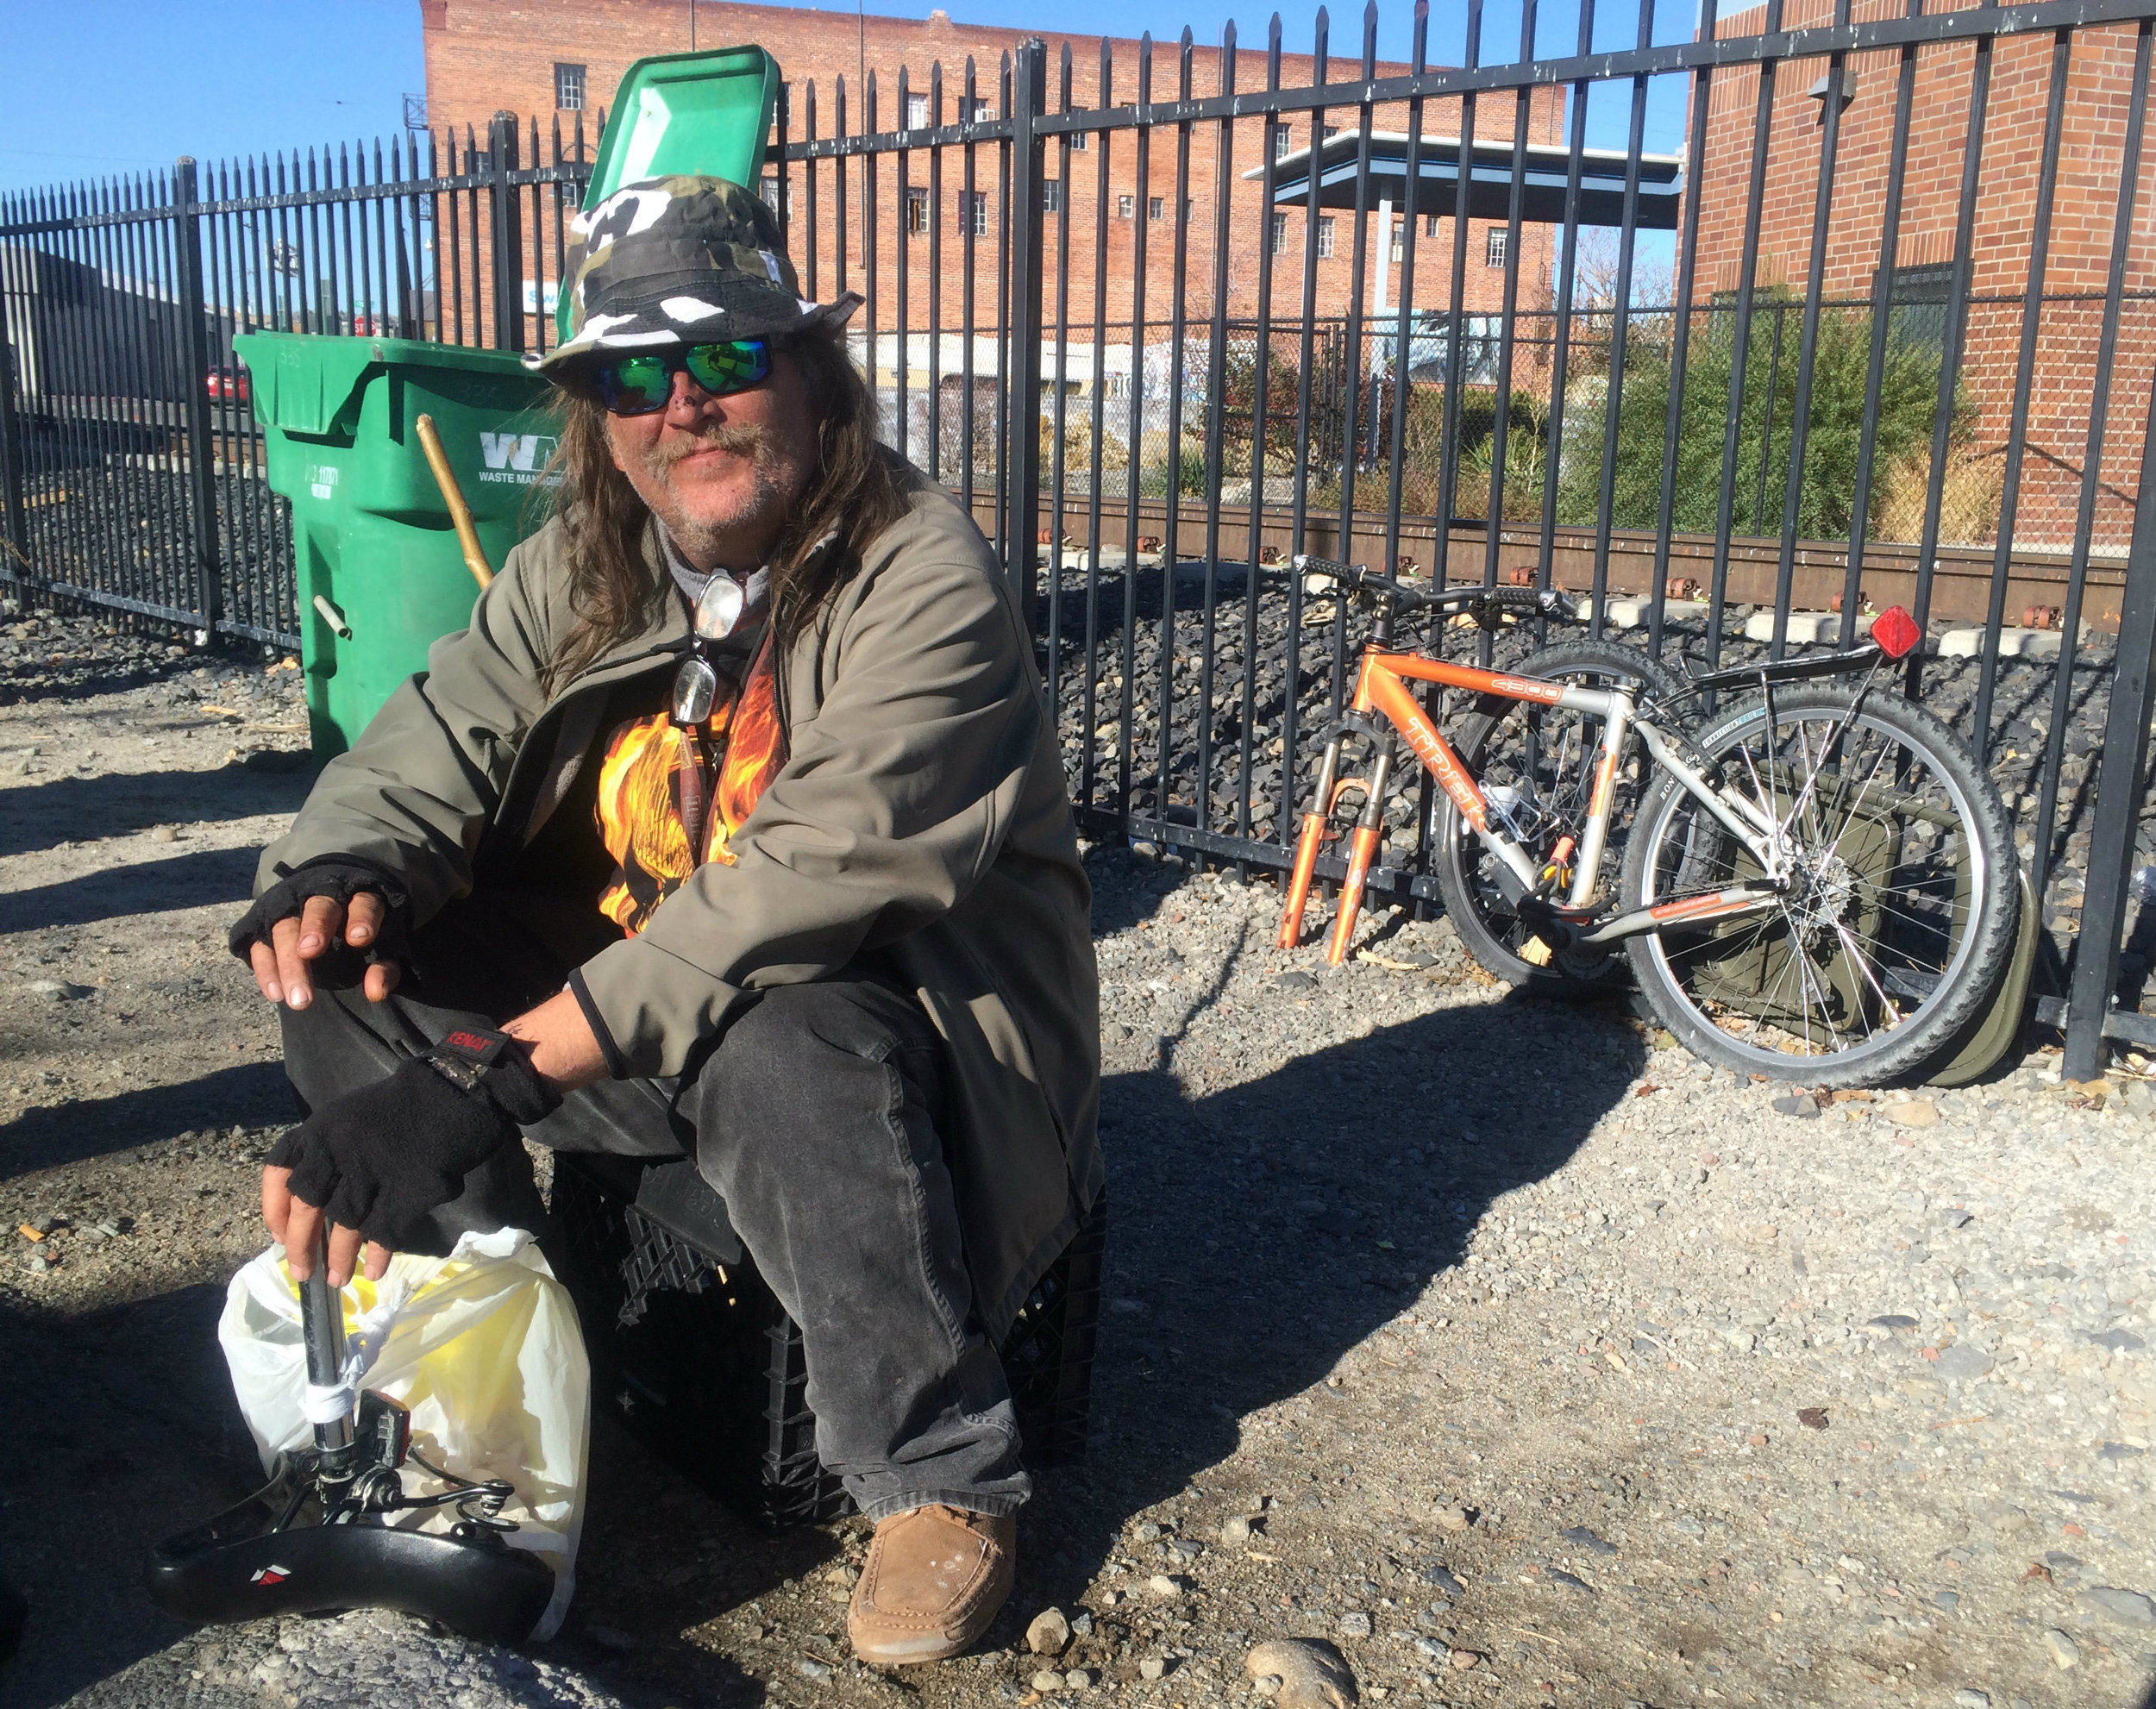 Alan, a self-described fourth generation 54-year-old Northern Nevadan, collecting about $700 in disability payments, is one of many local residents recently fending for himself on the streets due to rising rents. Photo and Interview by Prince Nesta for Our Town Reno